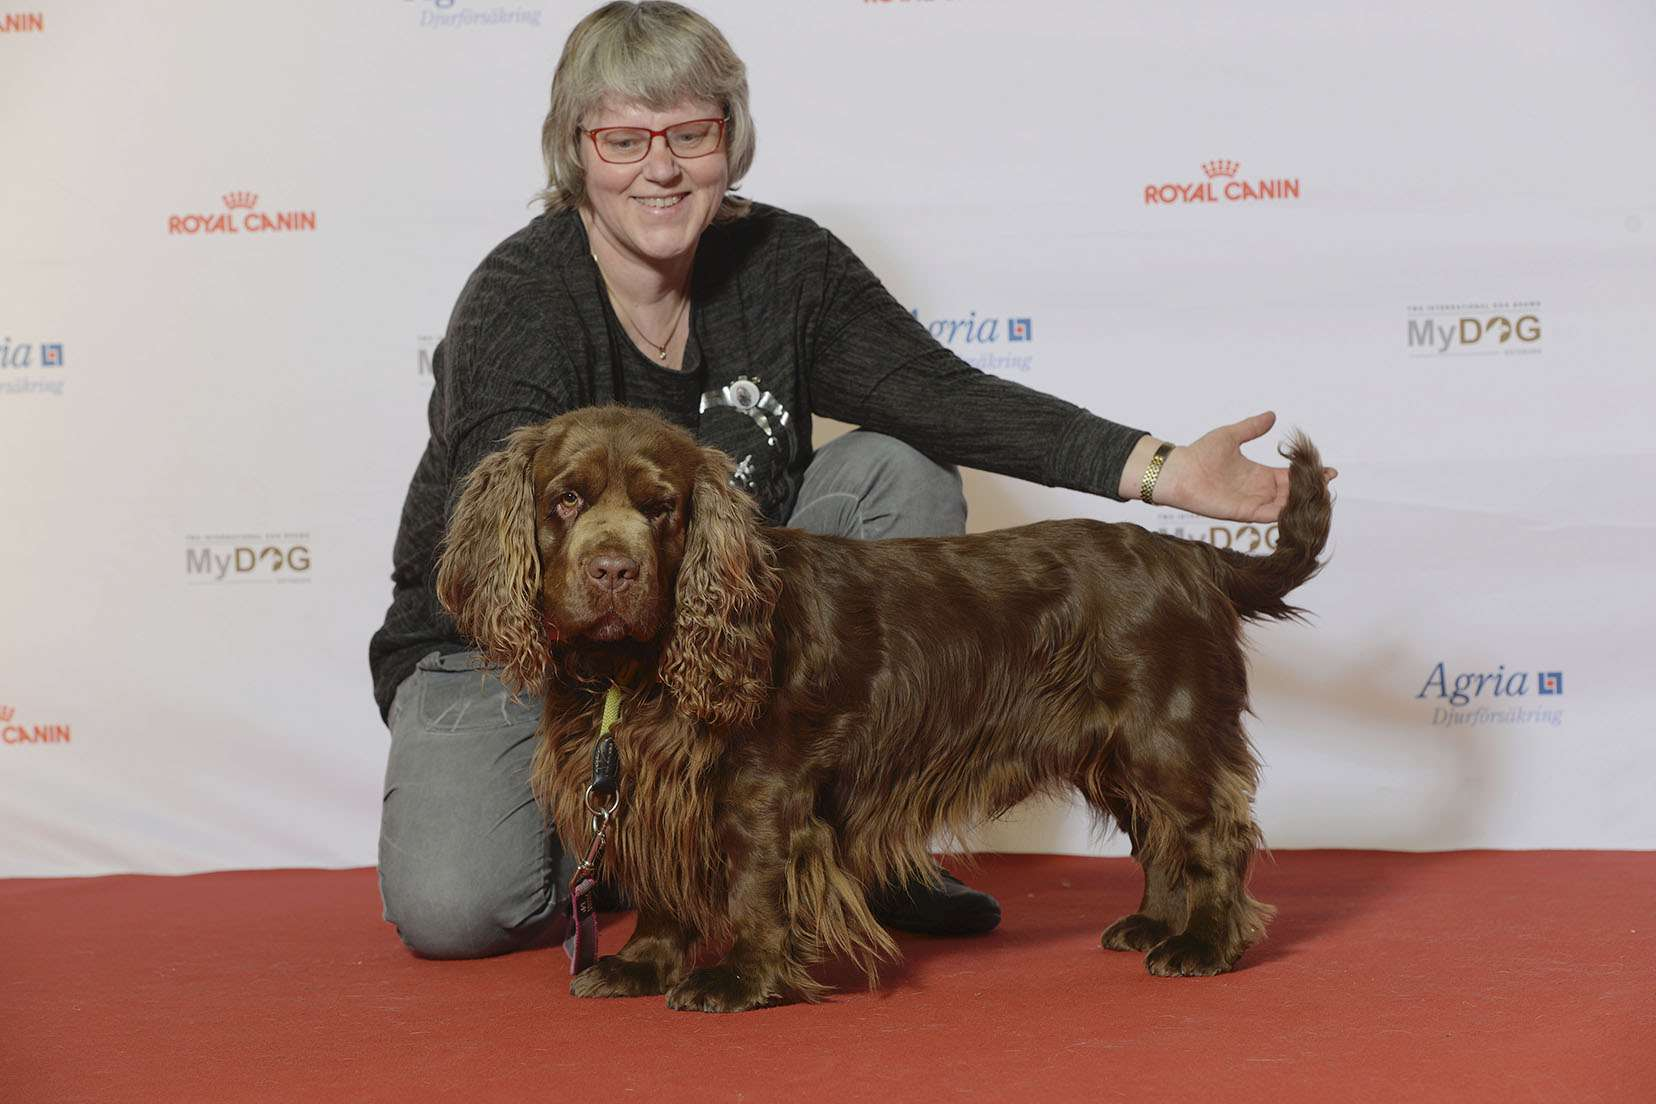 dog trainer poses with brown Sussex Spaniel on red carpet at dog show